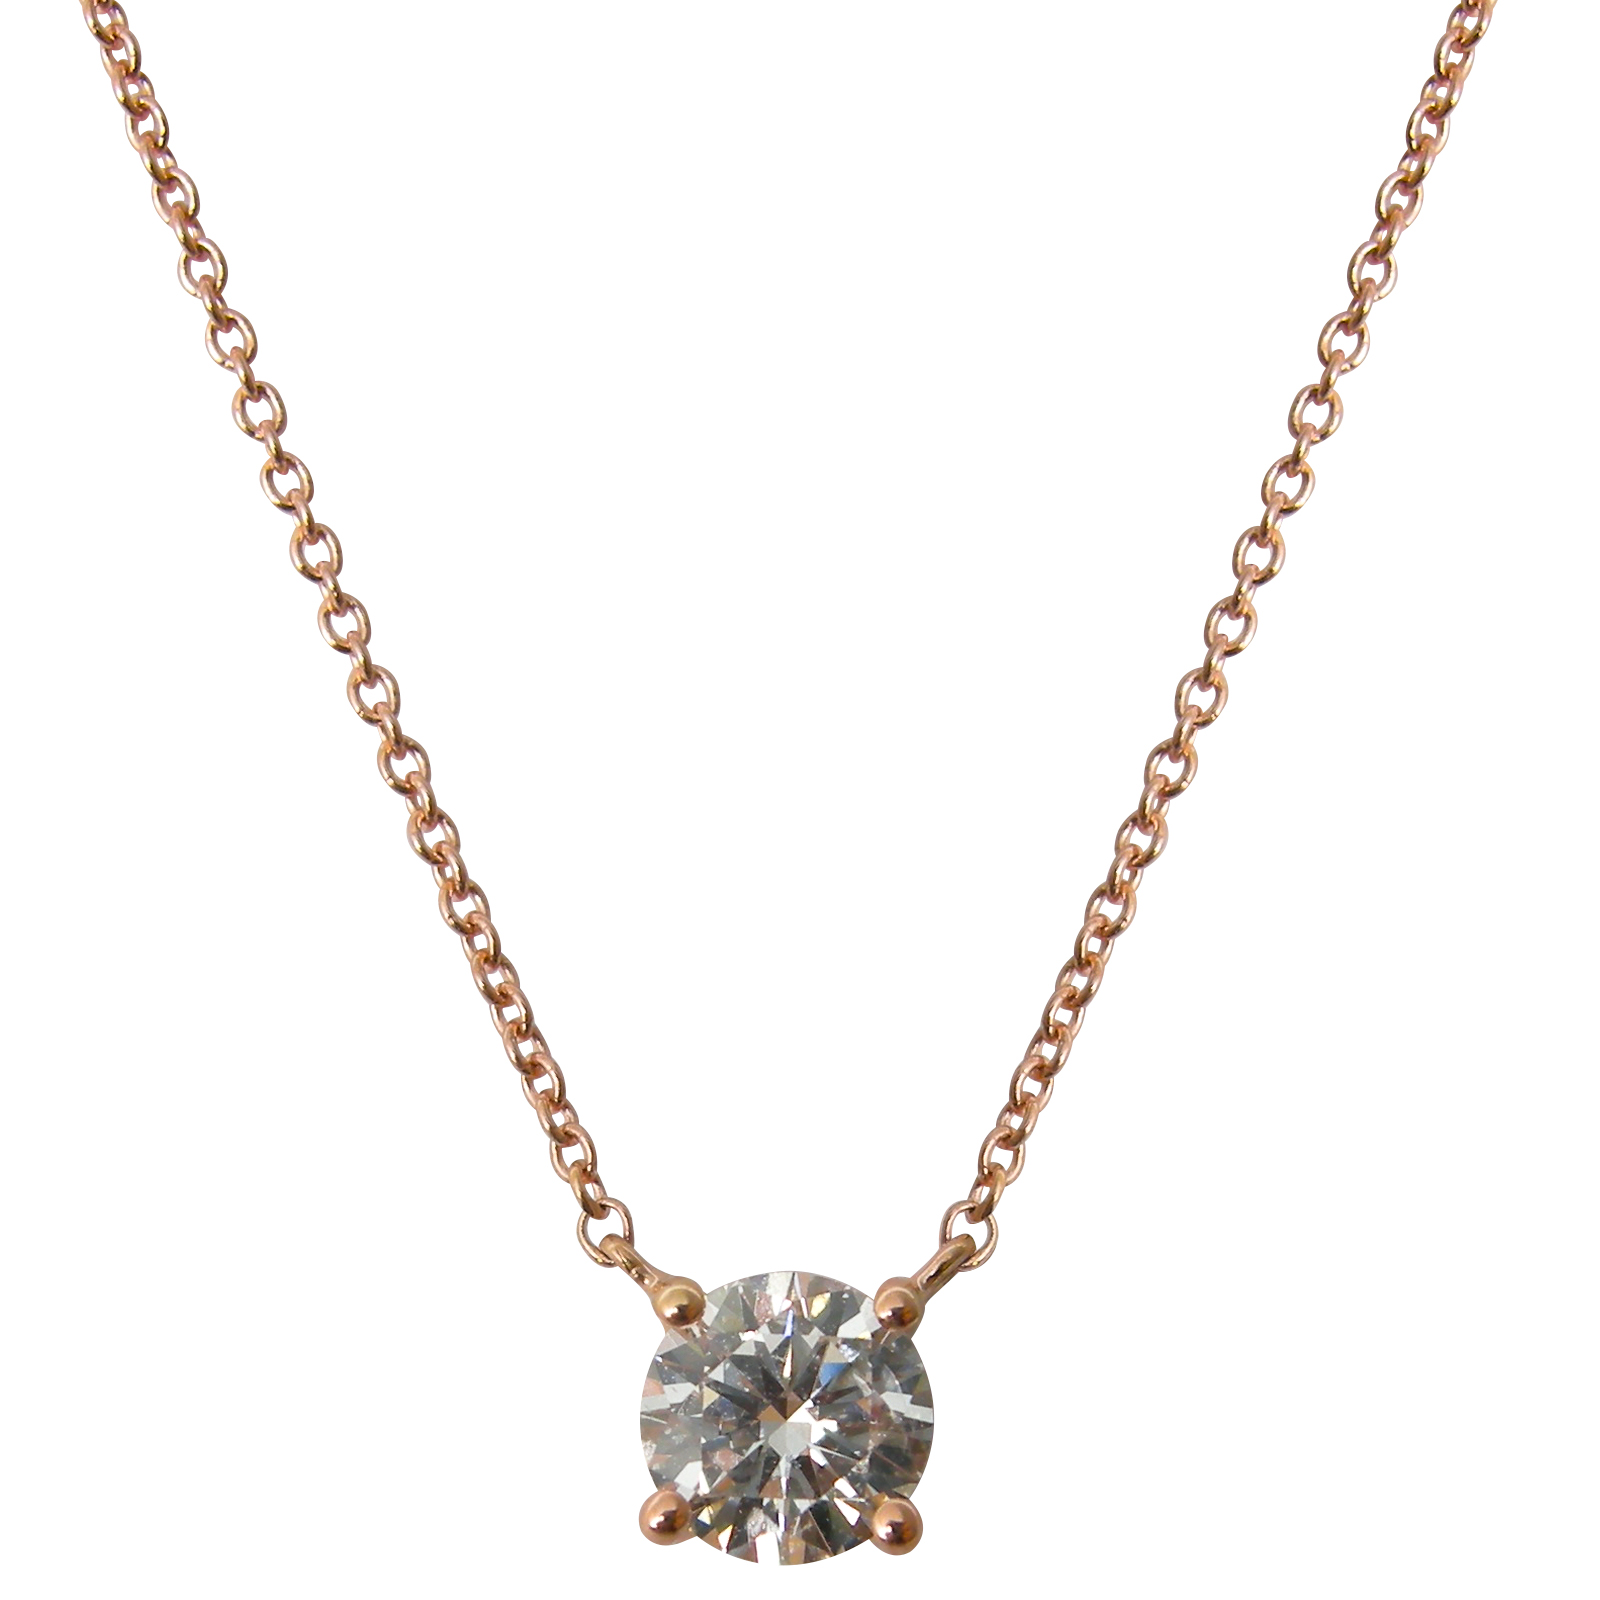 FOUR CLAW DIAMOND SOLITAIRE NECKLACE CLUSTER DIAMOND PENDANT BESPOKE FINE JEWELLERY BY SHAHINA HATTA